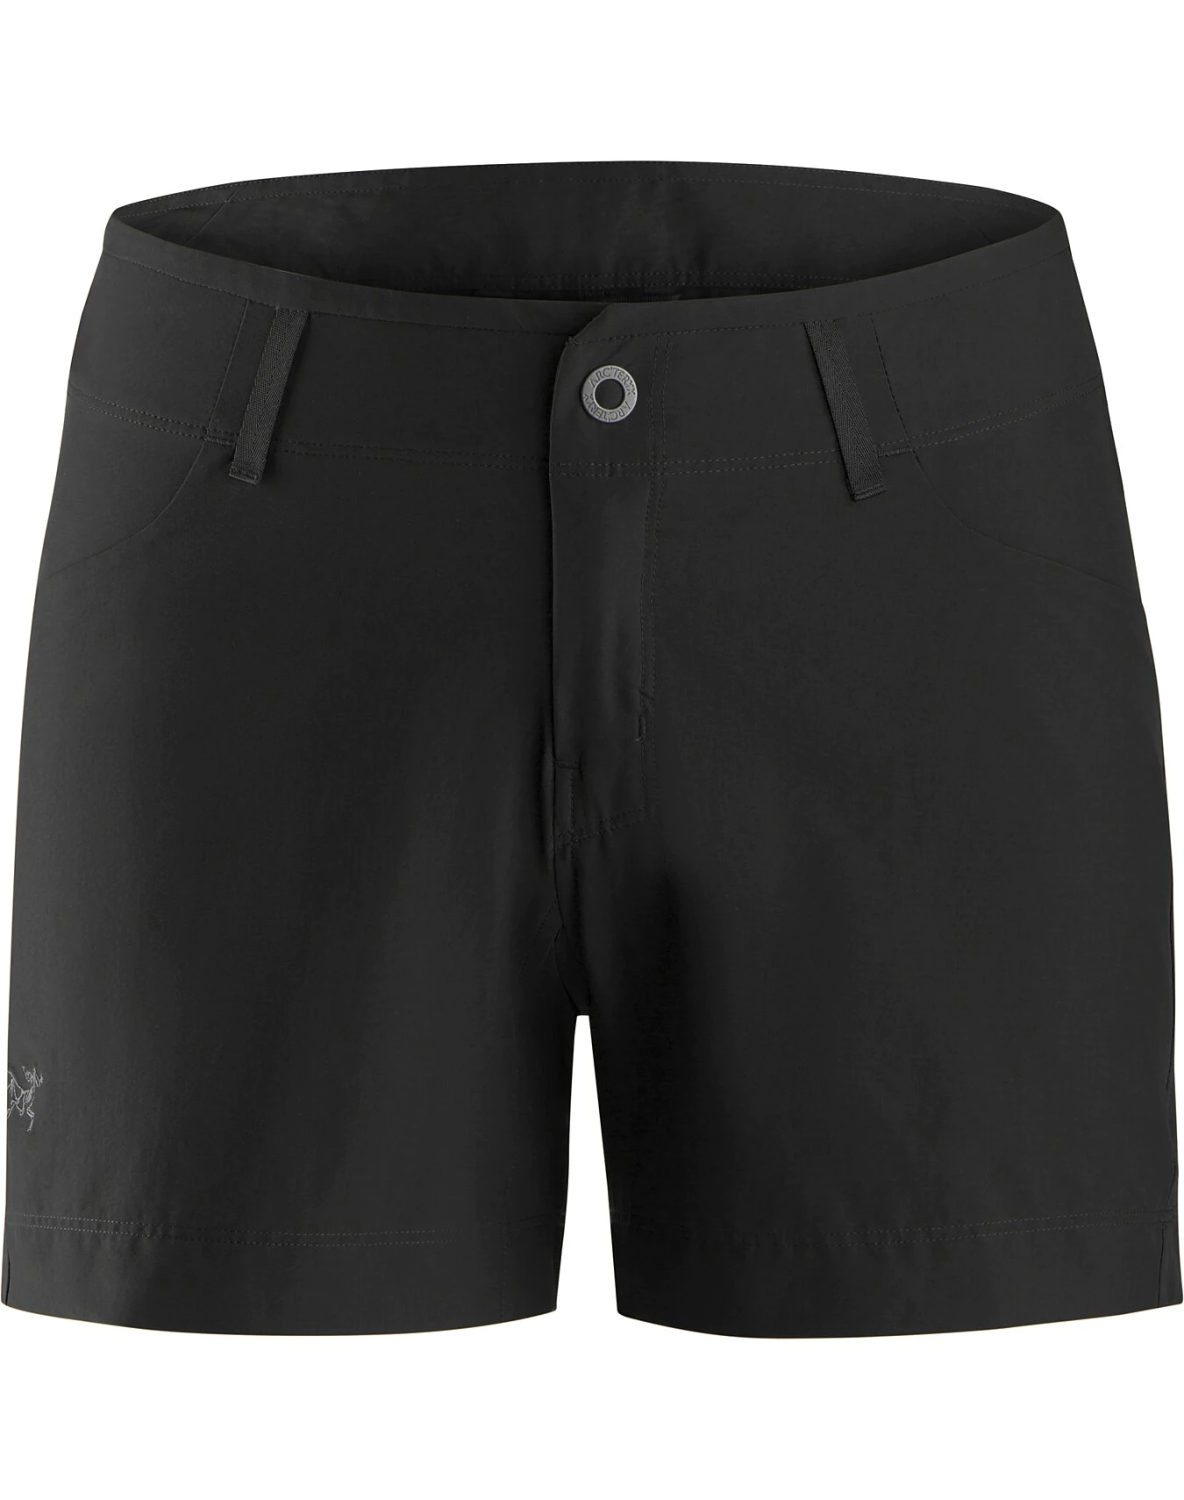 "Creston Short 4,5"" Women's"